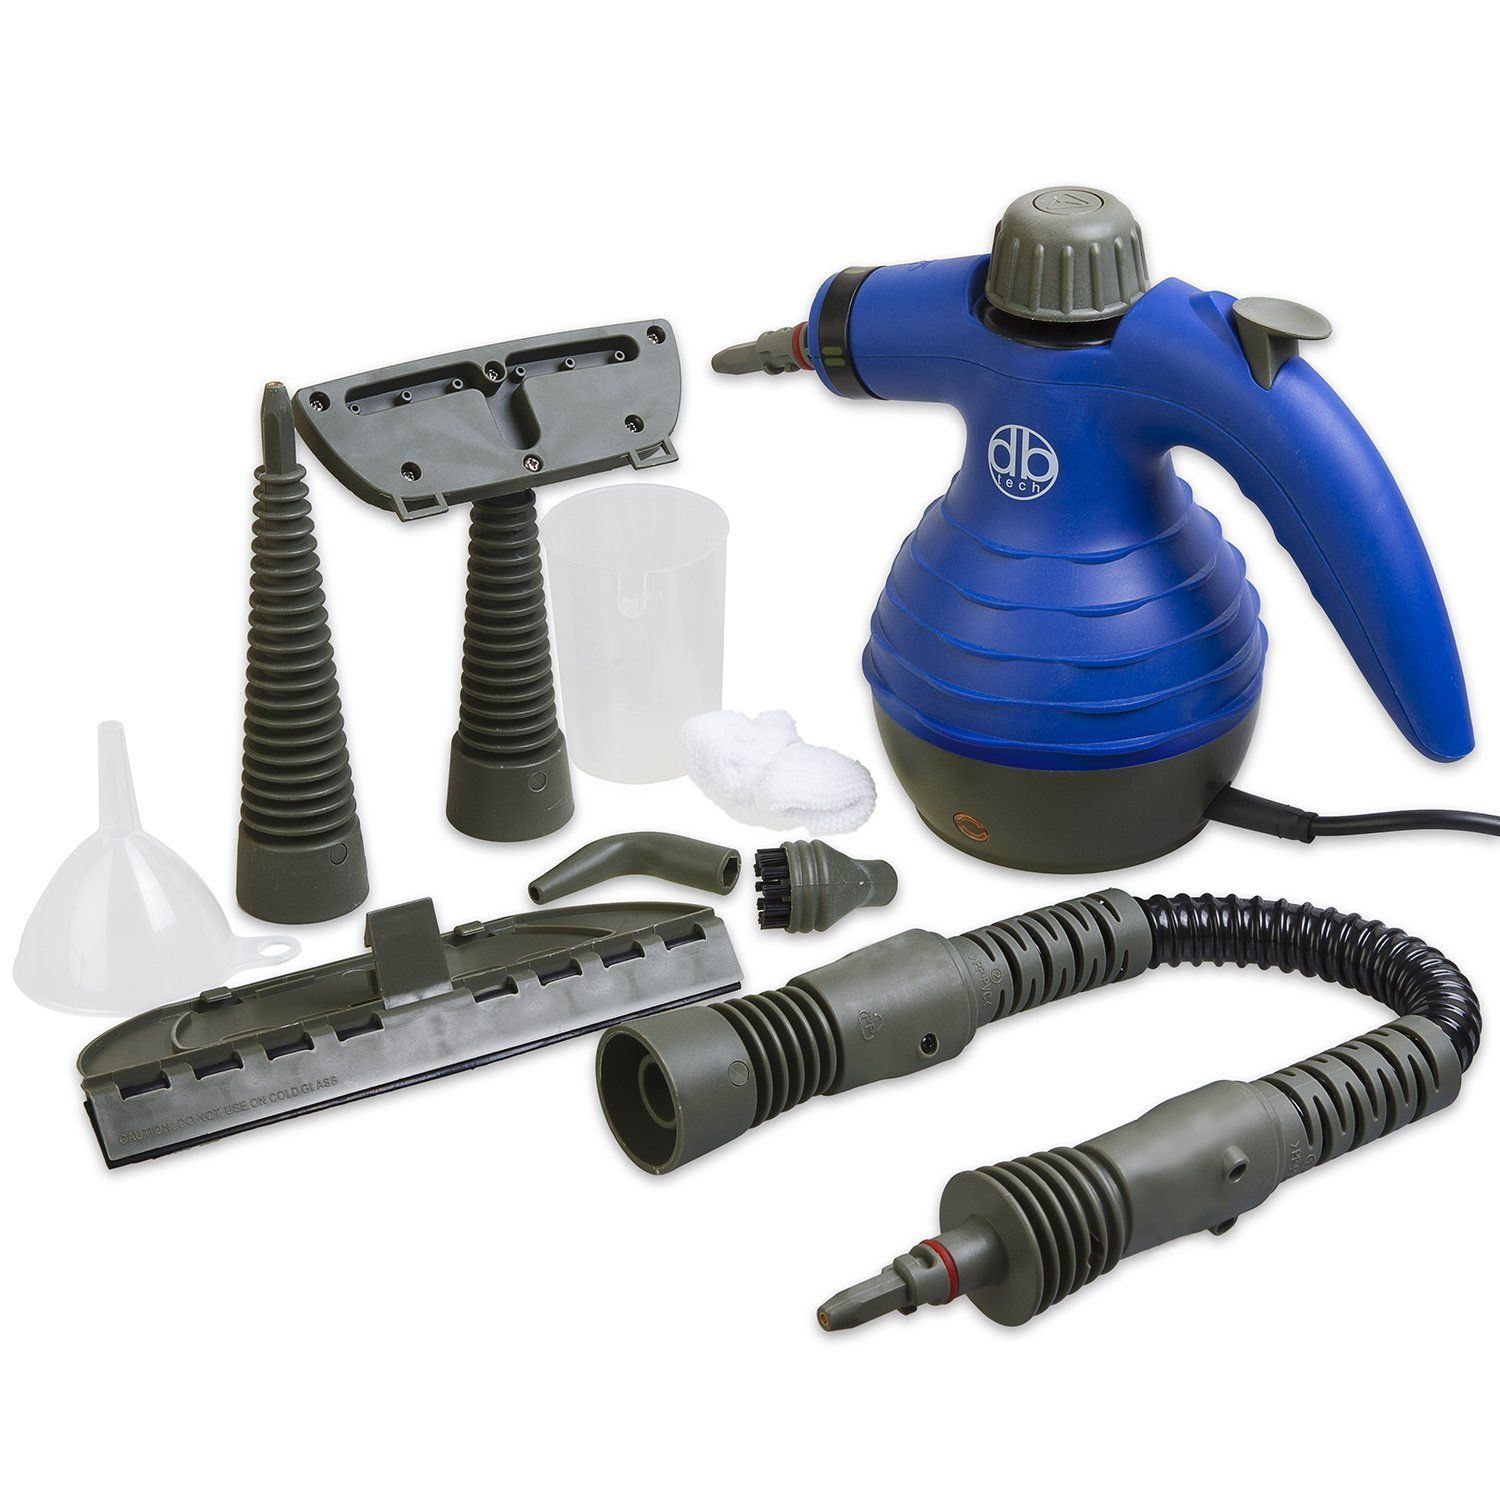 Best Handheld Steamers for ChemicalFree Cleaning in 2020